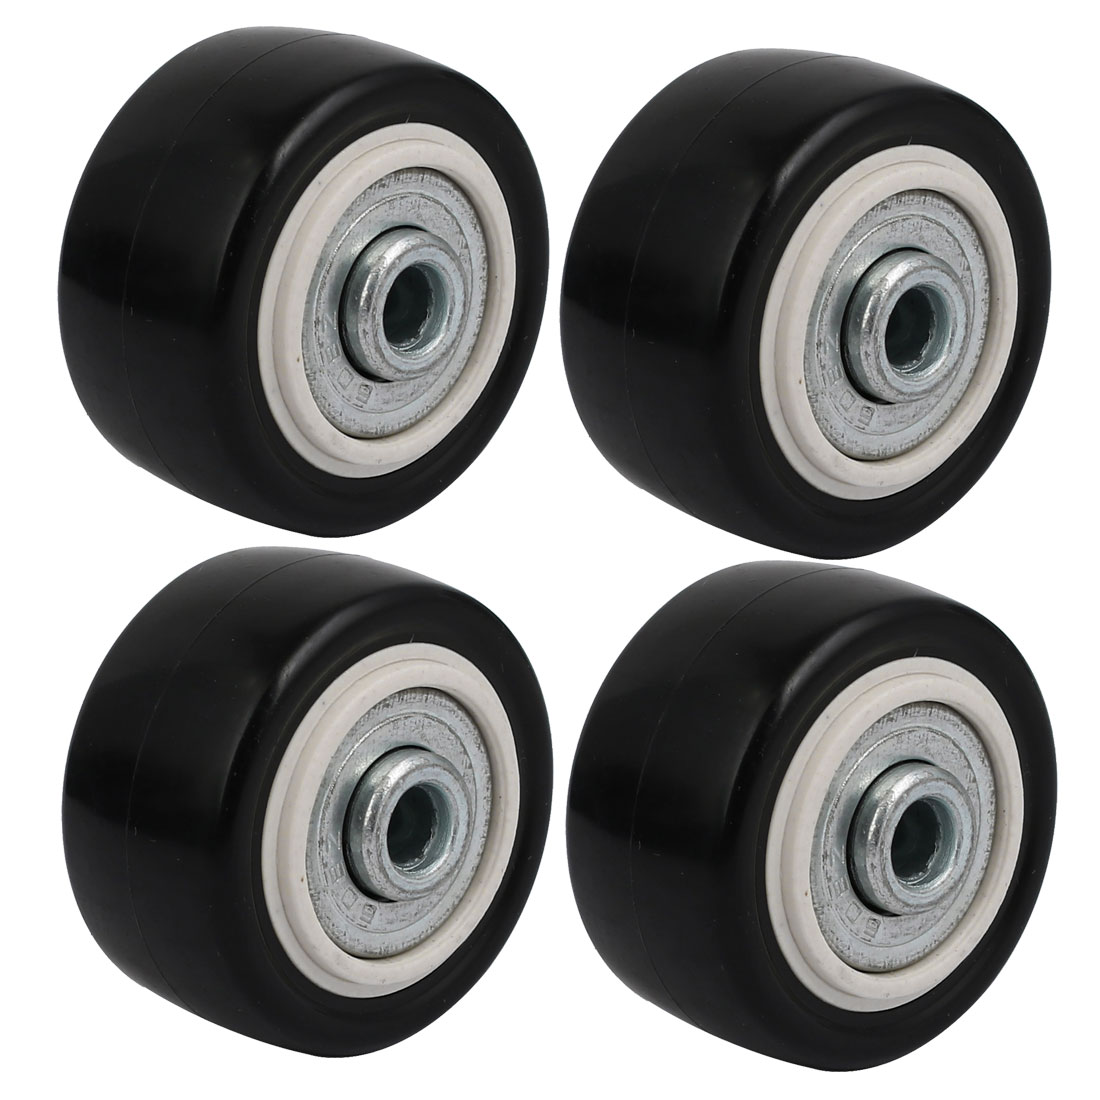 Unique Bargains 1.5-inch Diameter Wheel Skateboard Trolley Bearing Caster Pulley 4pcs